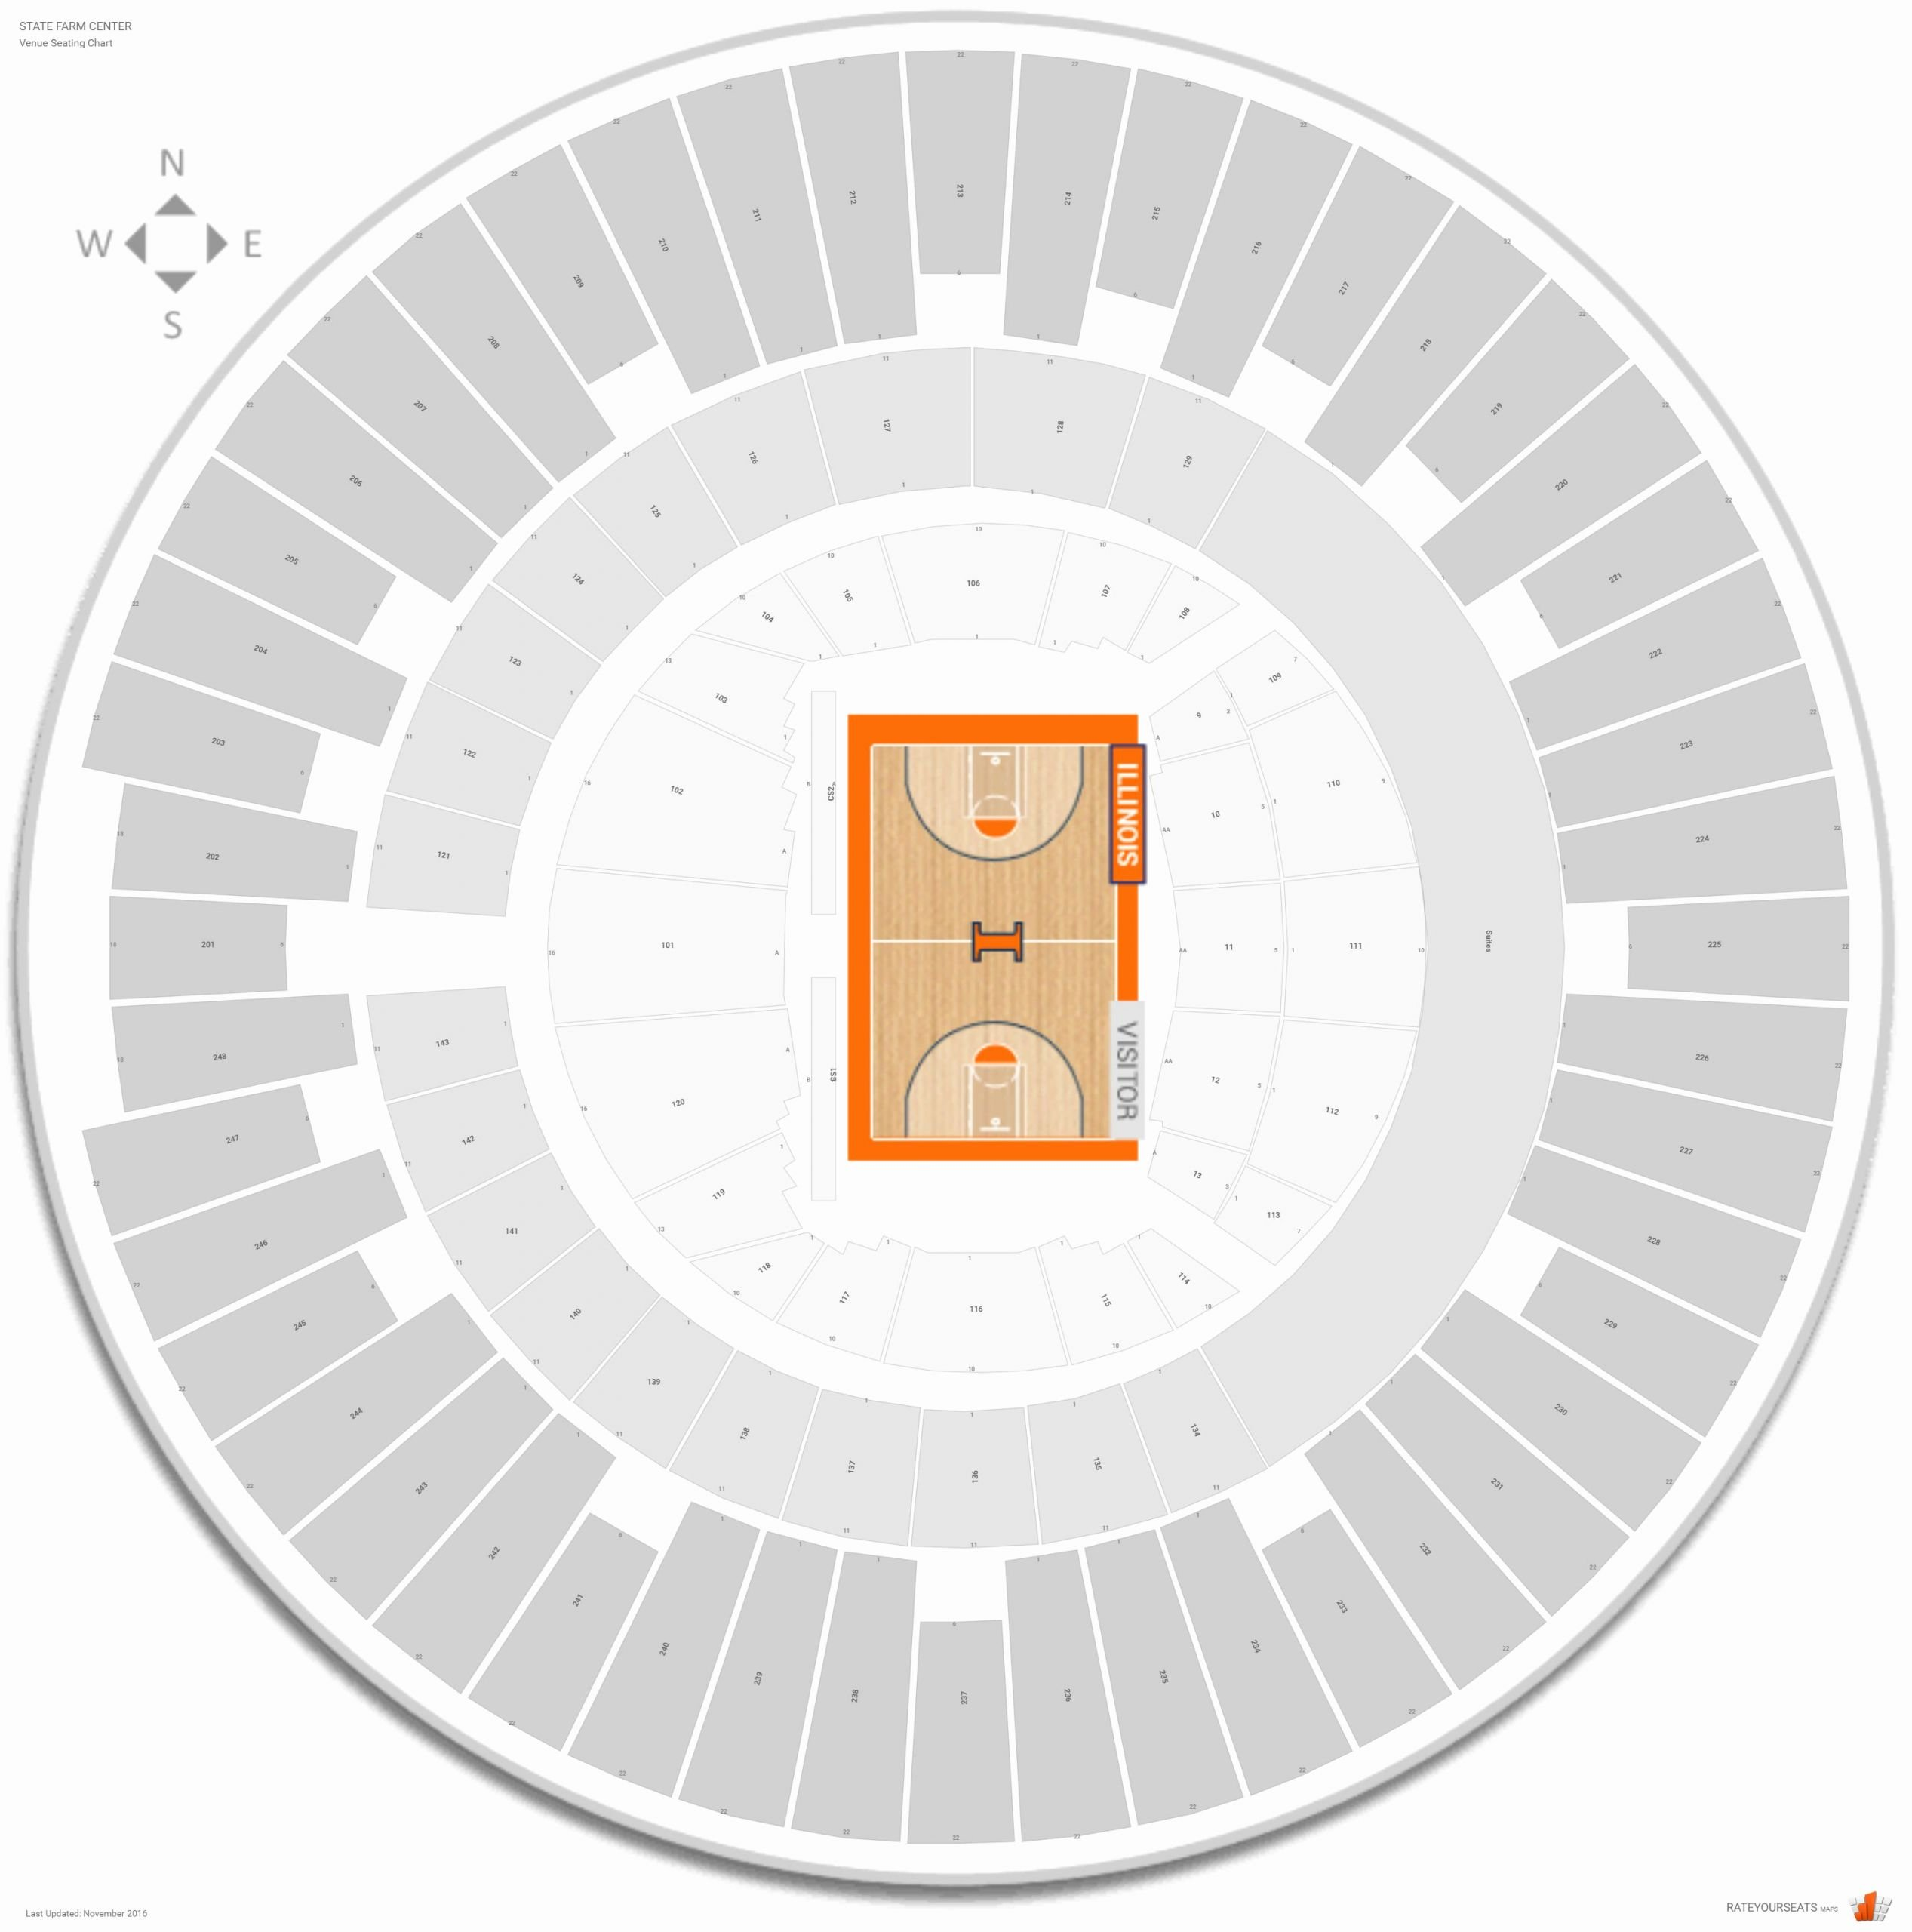 Assembly Hall Seating Chart Lovely State Farm Center Illinois Seating Guide Rateyourseats